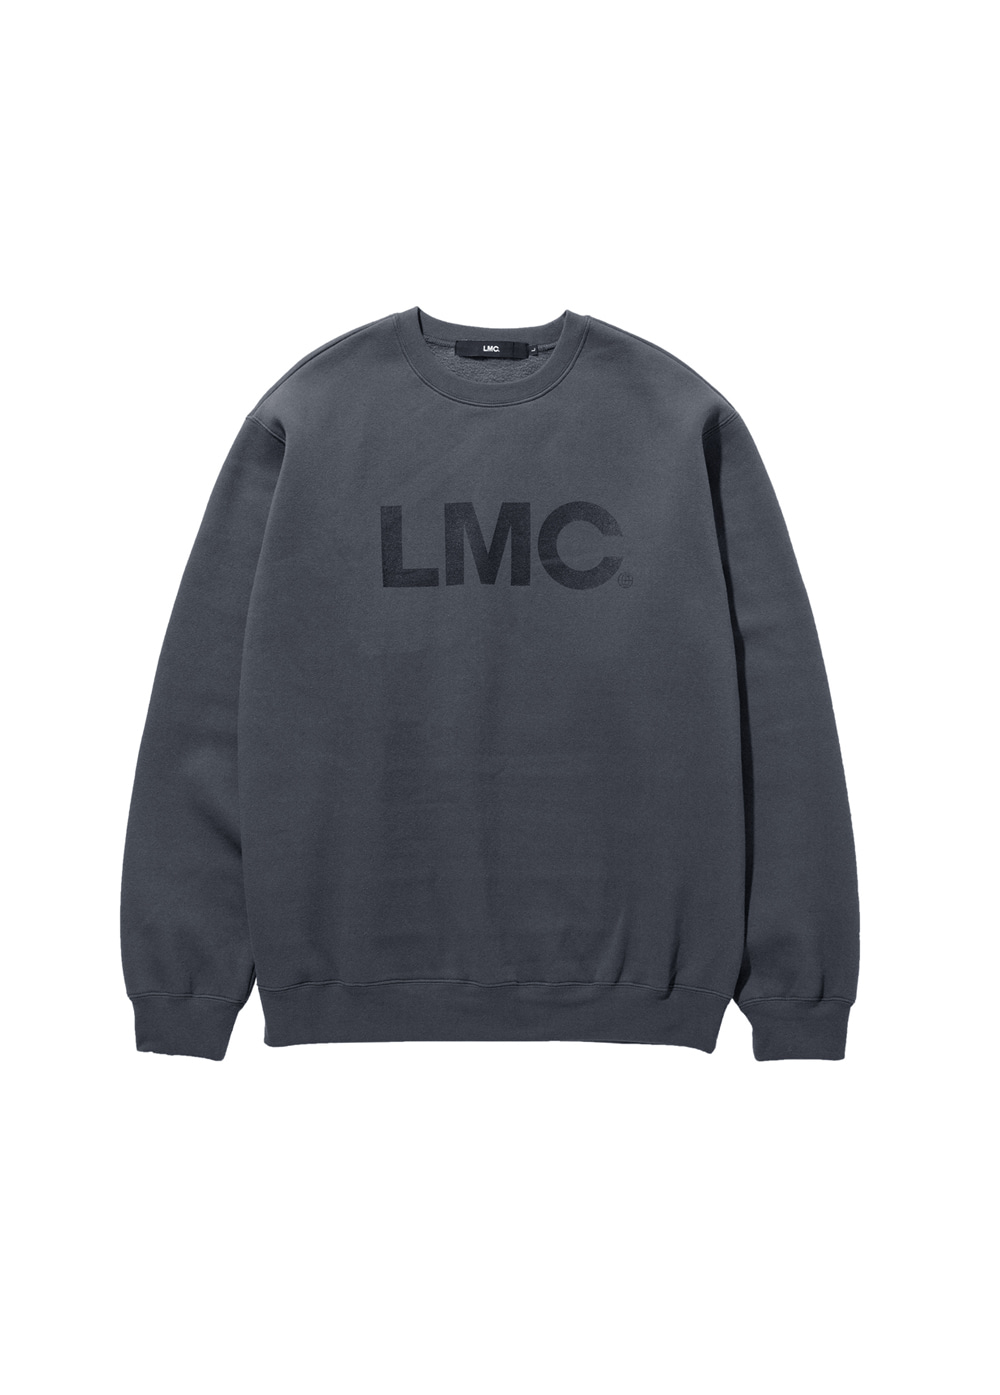 LMC OG WHEEL SWEATSHIRT dark gray